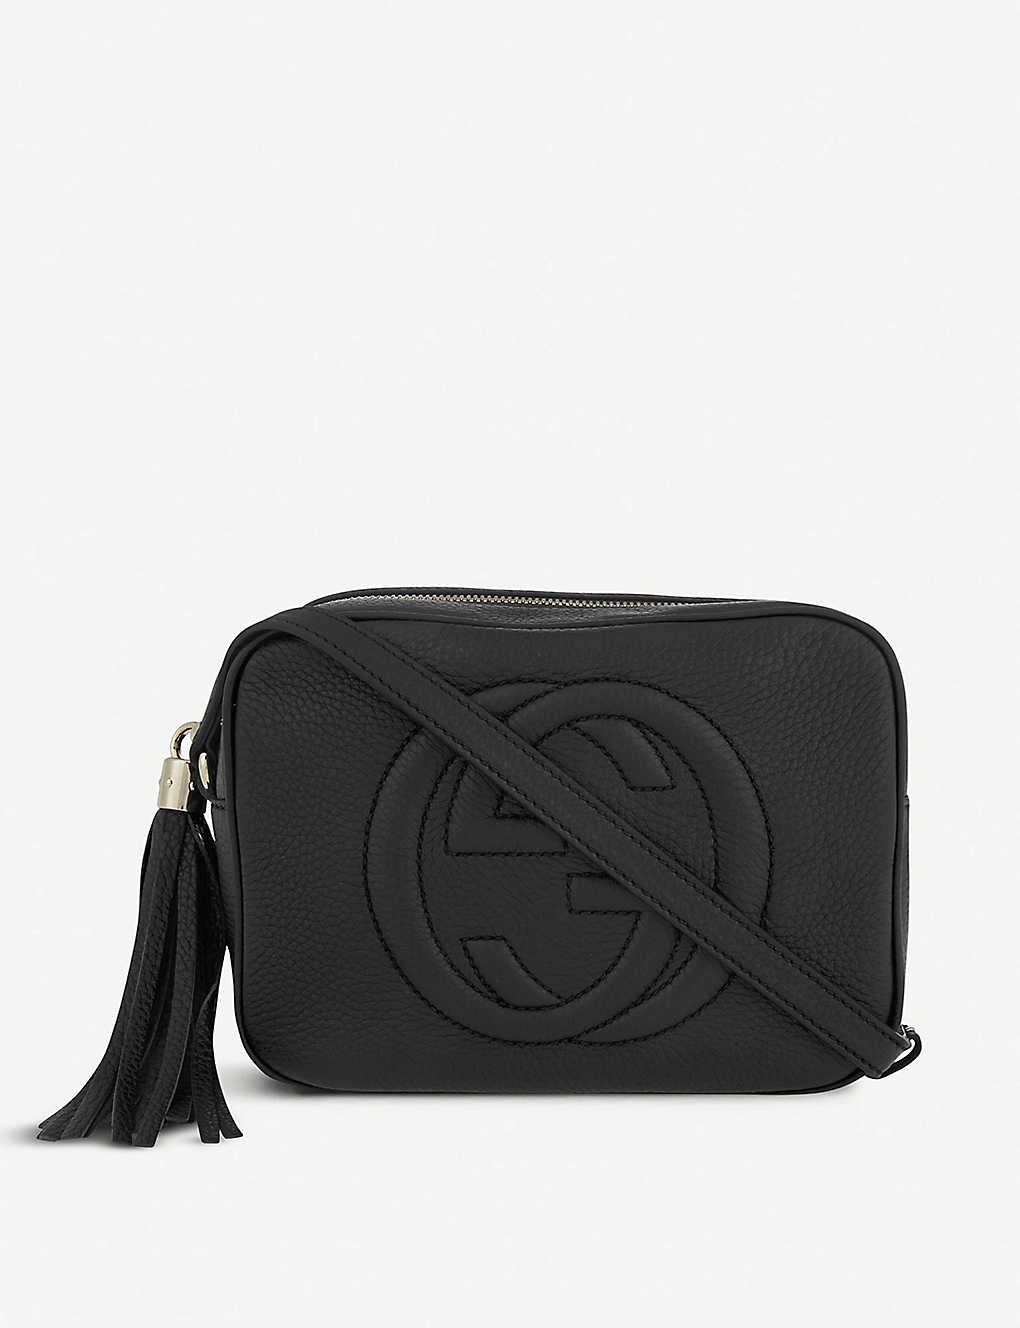 15c53be57ae5 GUCCI - Soho leather cross-body bag | Selfridges.com